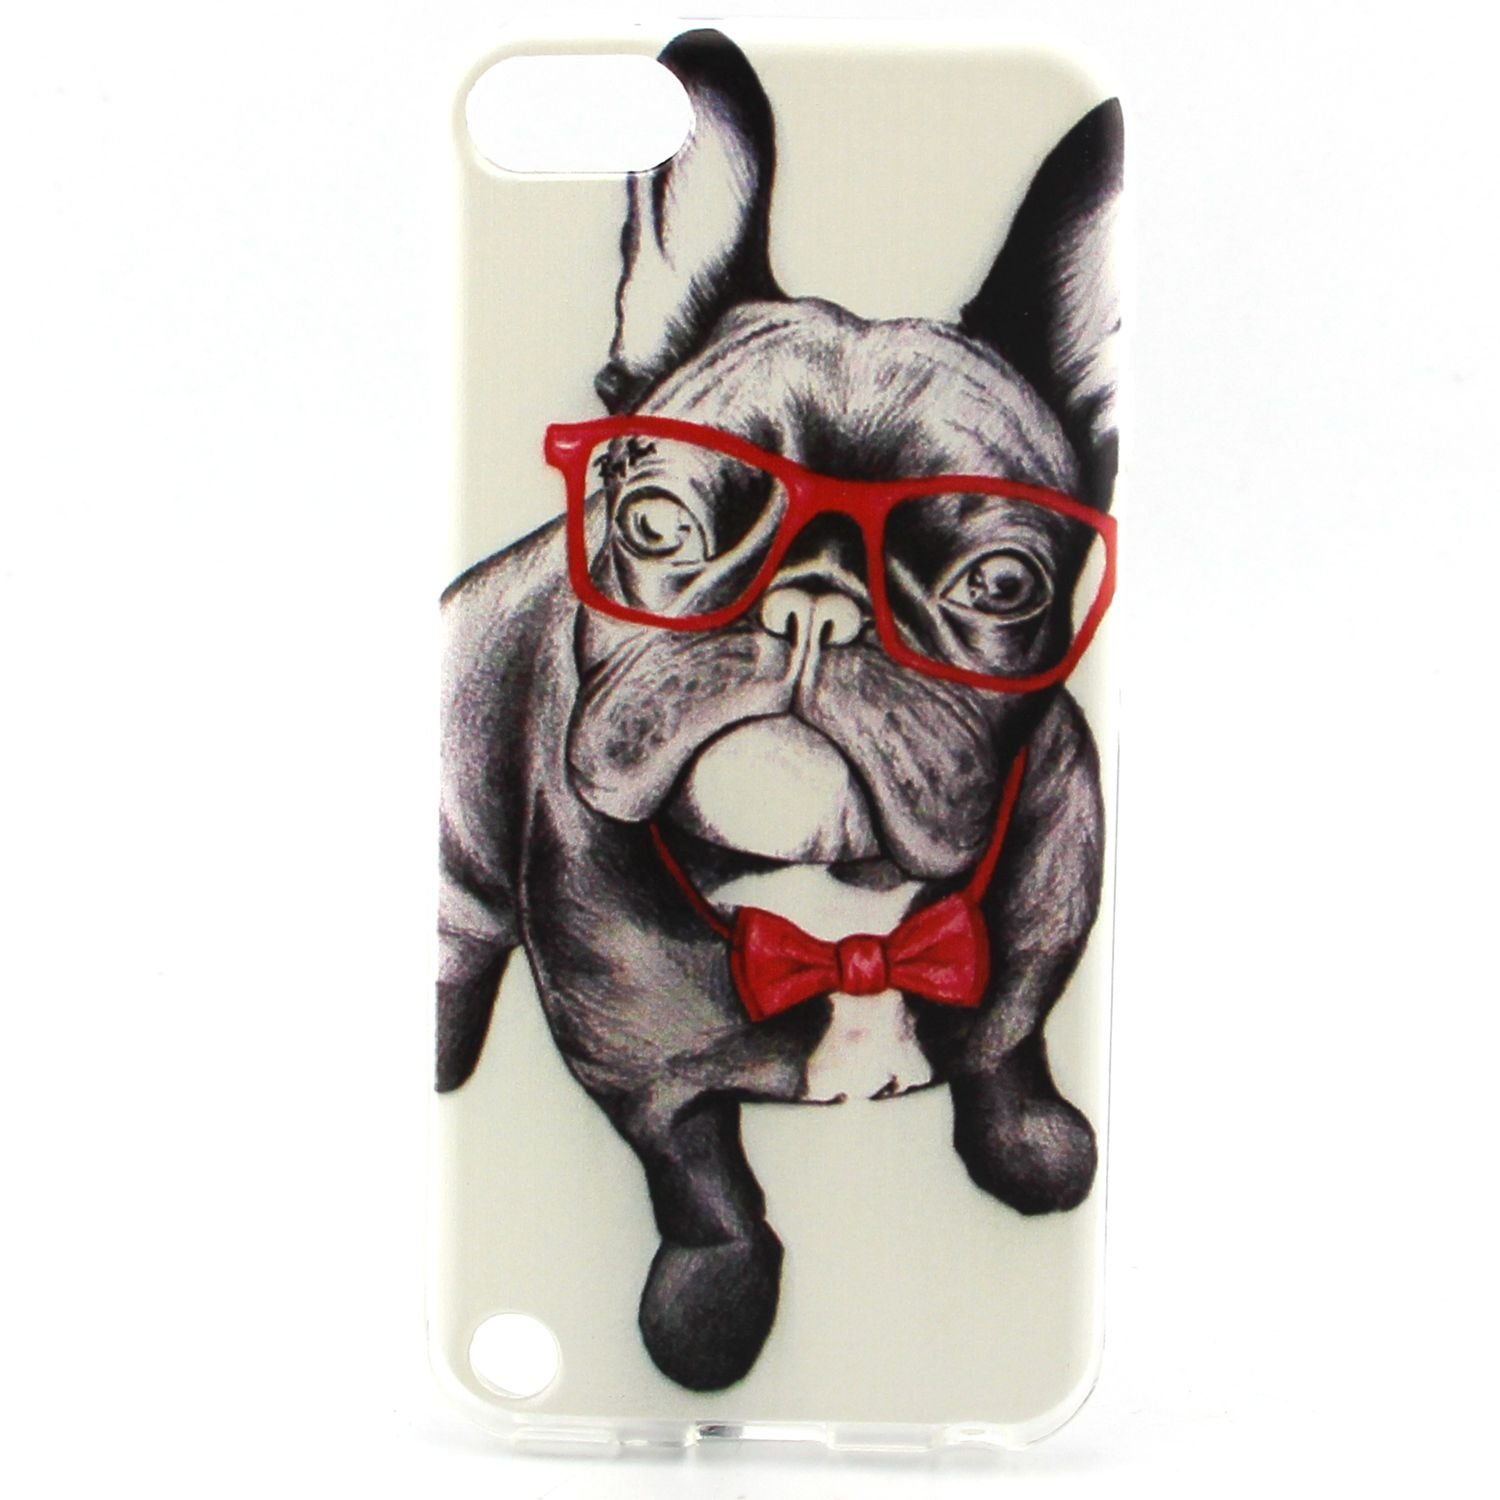 iPod Touch 5 Gen Case, iPod Touch 6 Case, Easytop Premium Exact Fit Fashion Style Flexible Ultra Slim Soft TPU Rubber Back Cover Protective Skin Case (Dog with Red Glasses)